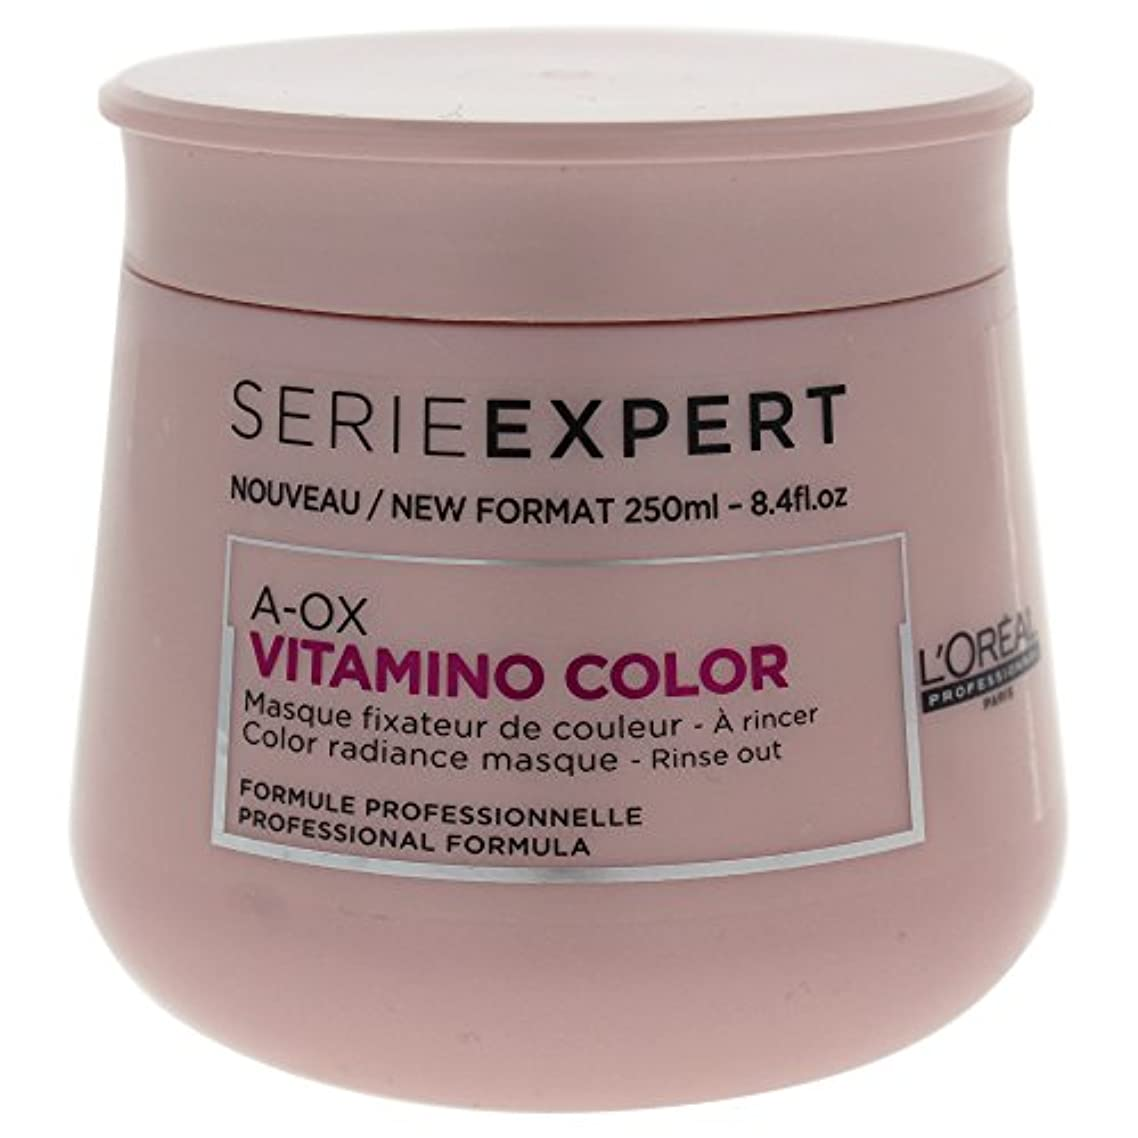 L'Oreal Serie Expert A-OX VITAMINO COLOR Color Radiance Masque 250 ml [並行輸入品]